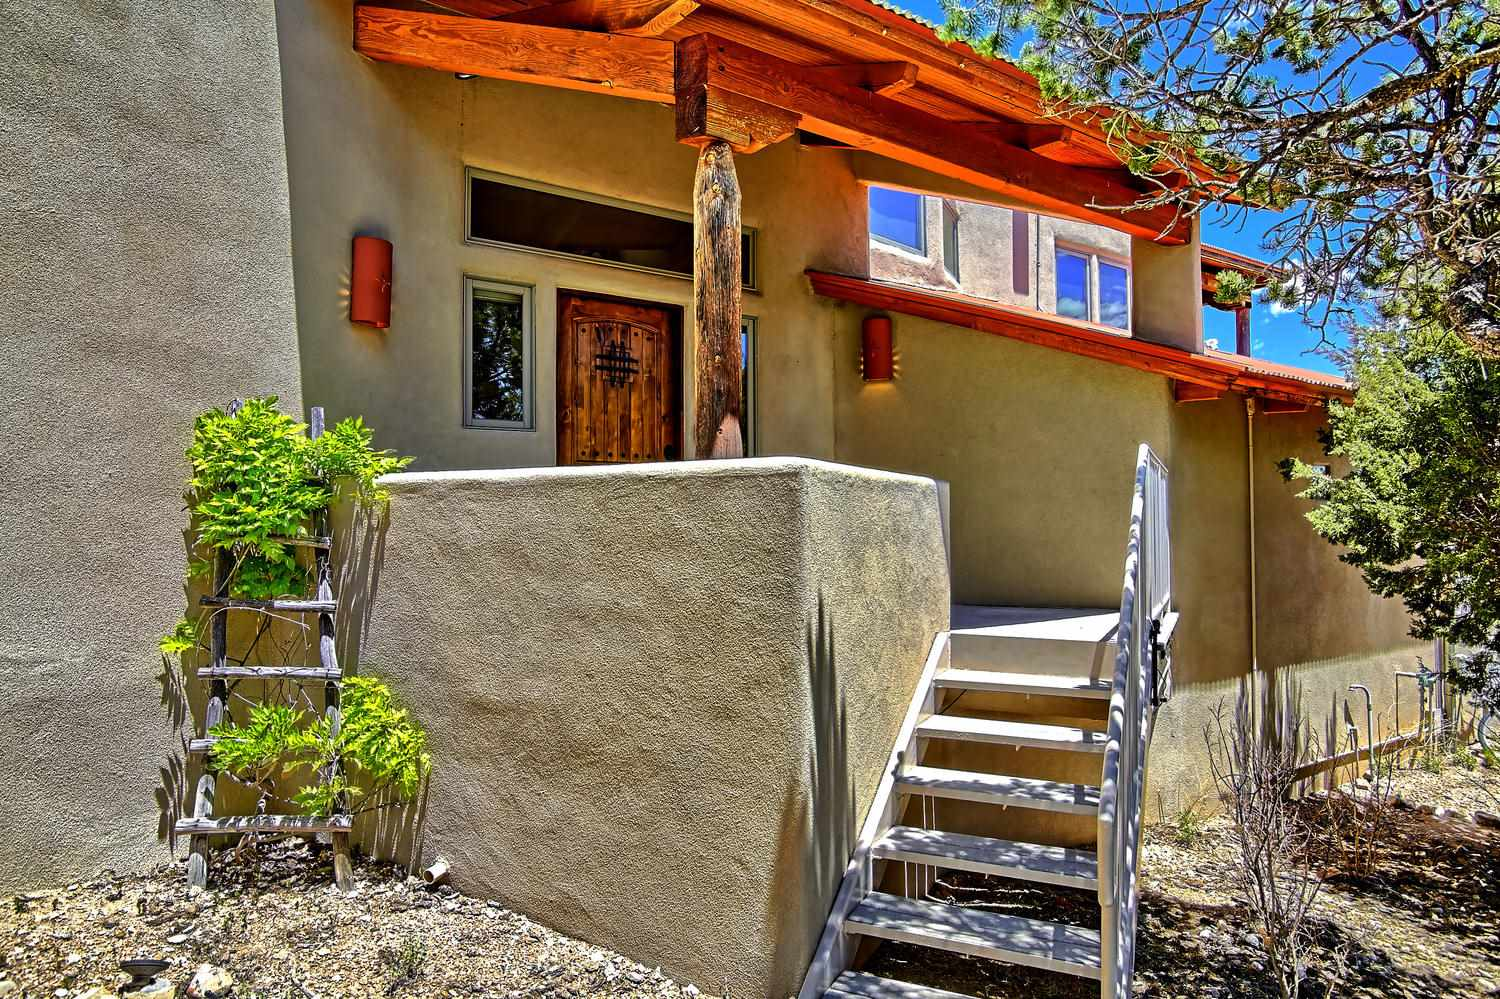 OPEN HOUSE! Saturday - 8/10, from 1 to 4 PM. Awe-inspiring, panoramic mountain vistas are yours from this captivatingly custom home featuring a modern twist to SW styling. Designed and built by H. Glen Murray, this home offers two spacious living and dining areas, a flowing floorplan, perfect for entertaining, and a magical outdoor courtyard, patio, and decks. Broadband Internet at 25 mbps. Separate owners suite with 2-way fireplace, fabulous bath, and private deck for mountain viewing, star gazing, and relaxing with all of nature's nuances. Matchless Country Beauty!